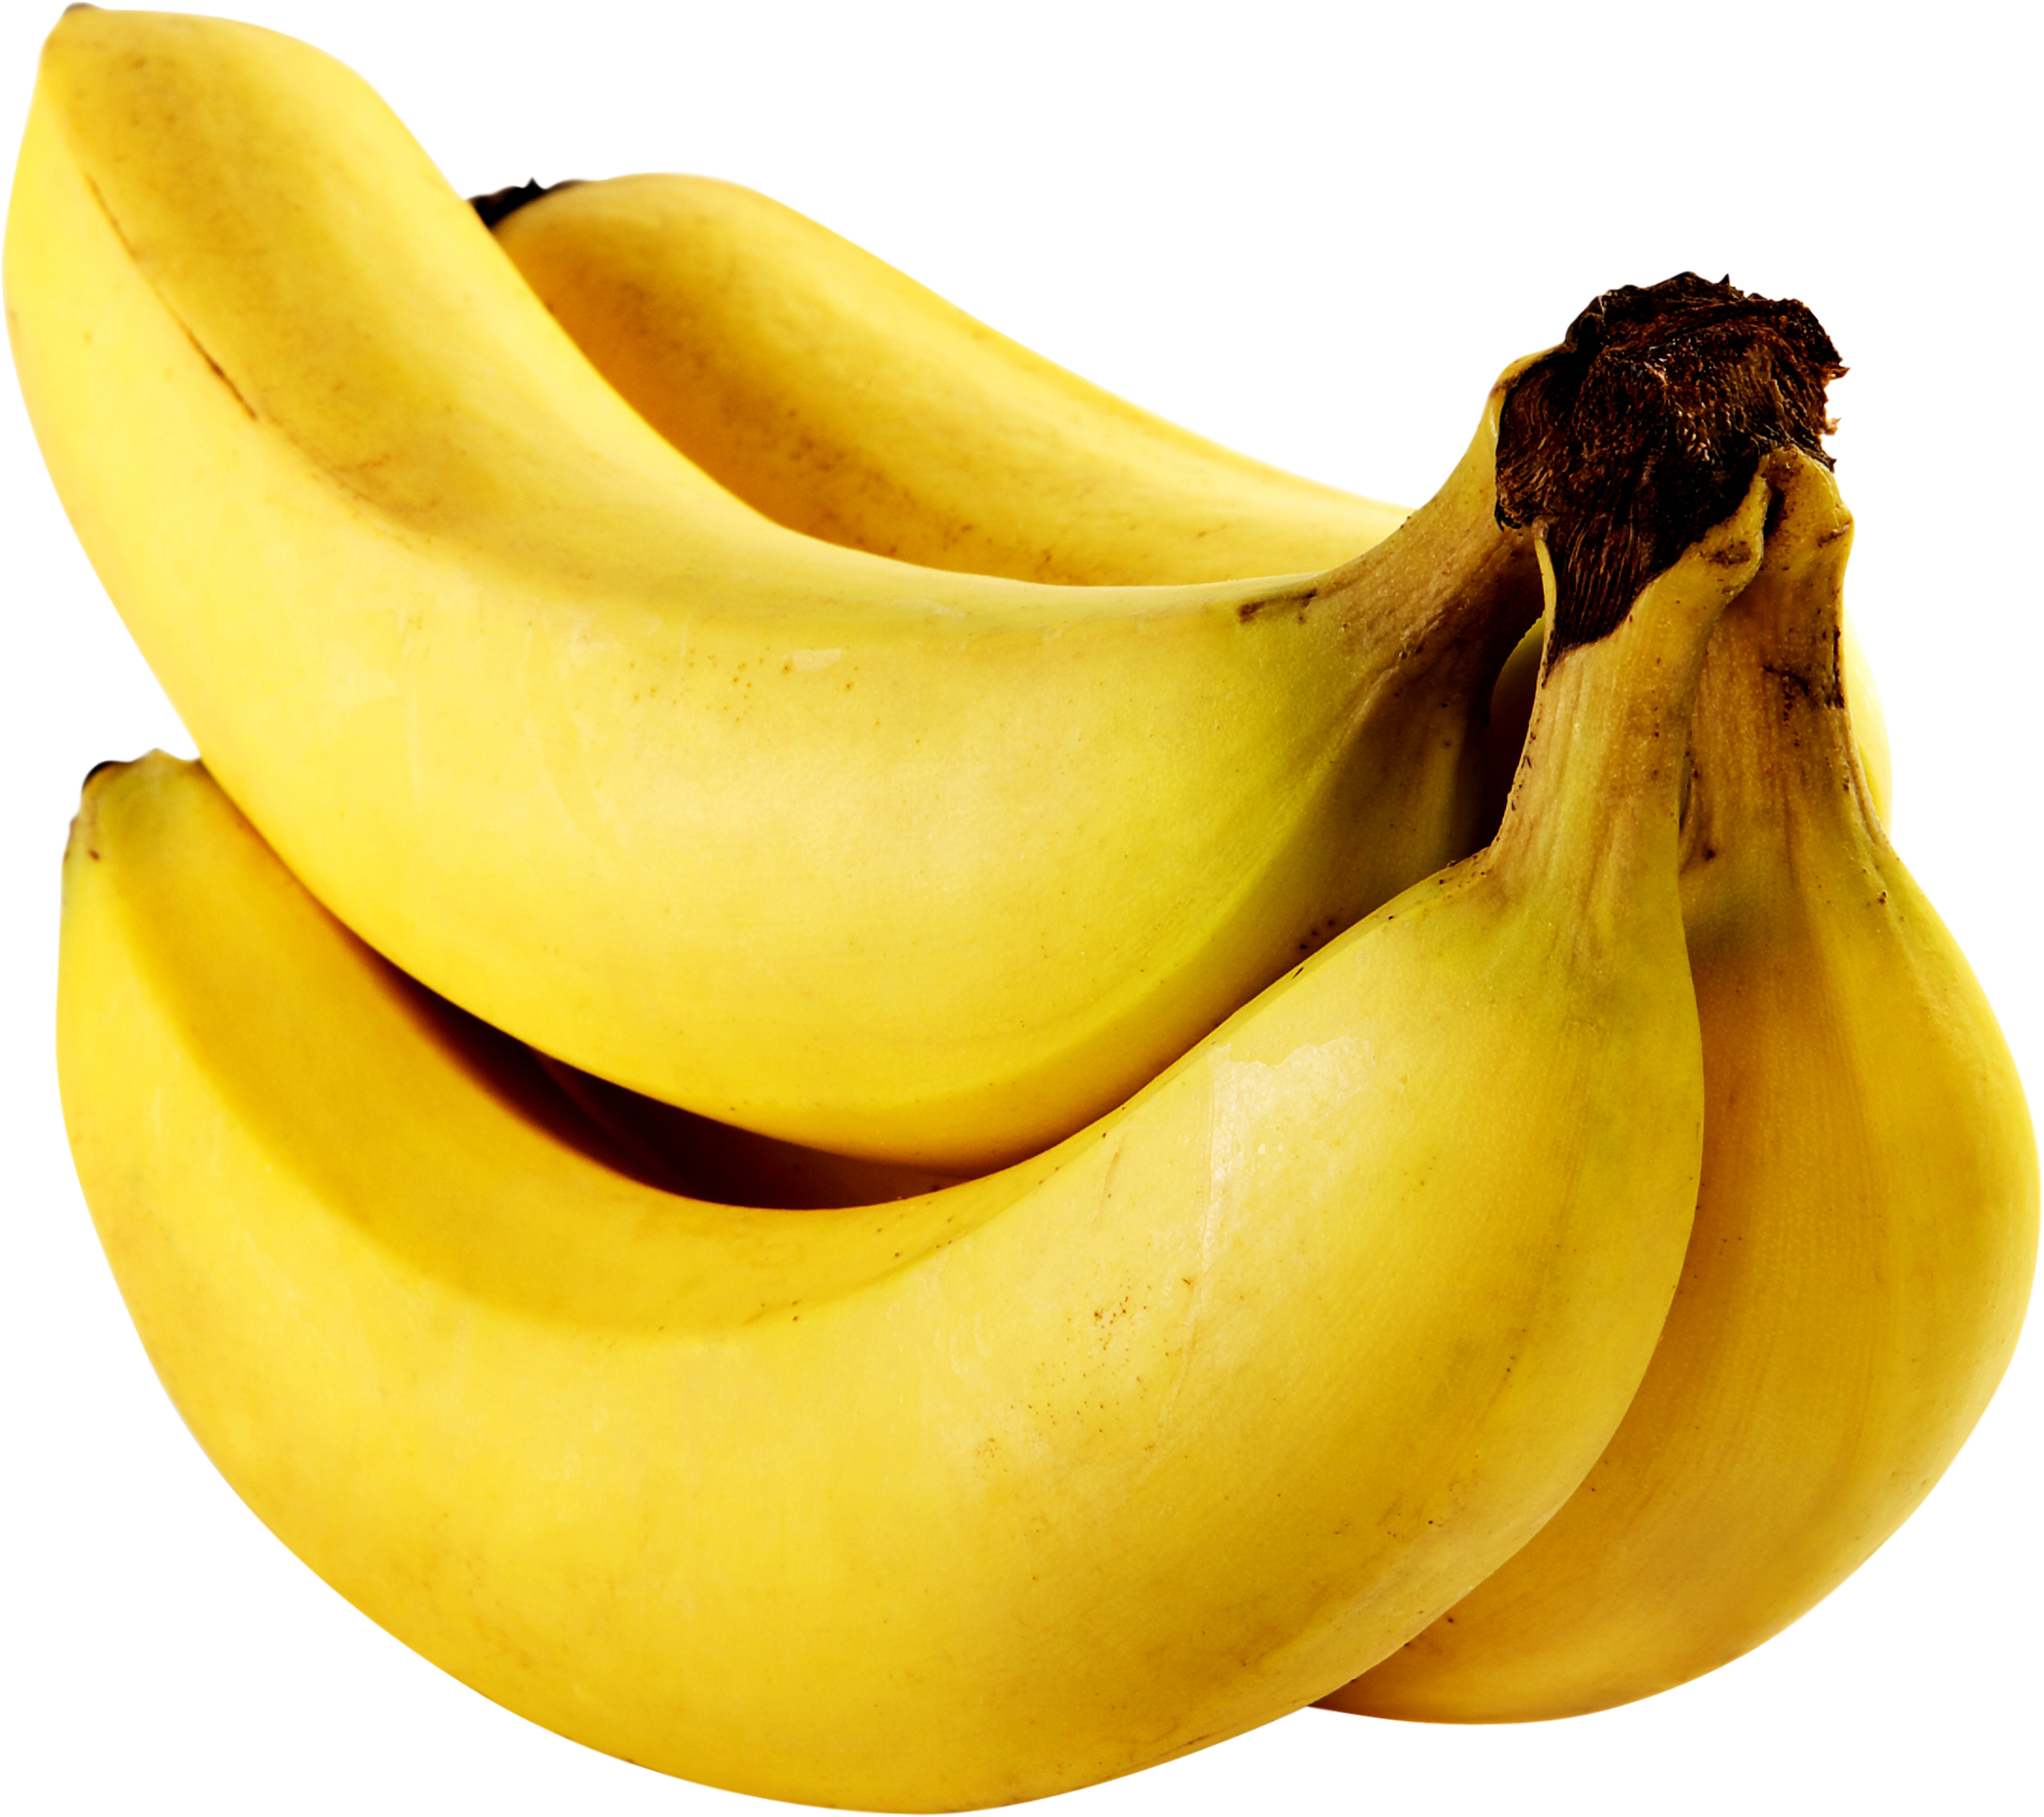 At about 3 grams per medium banana, we rank bananas as a good source of fiber. Approximately one-third of the fiber in bananas is water-soluble fiber. For one medium-sized banana, this amount translates into 1 gram of soluble fiber per banana.